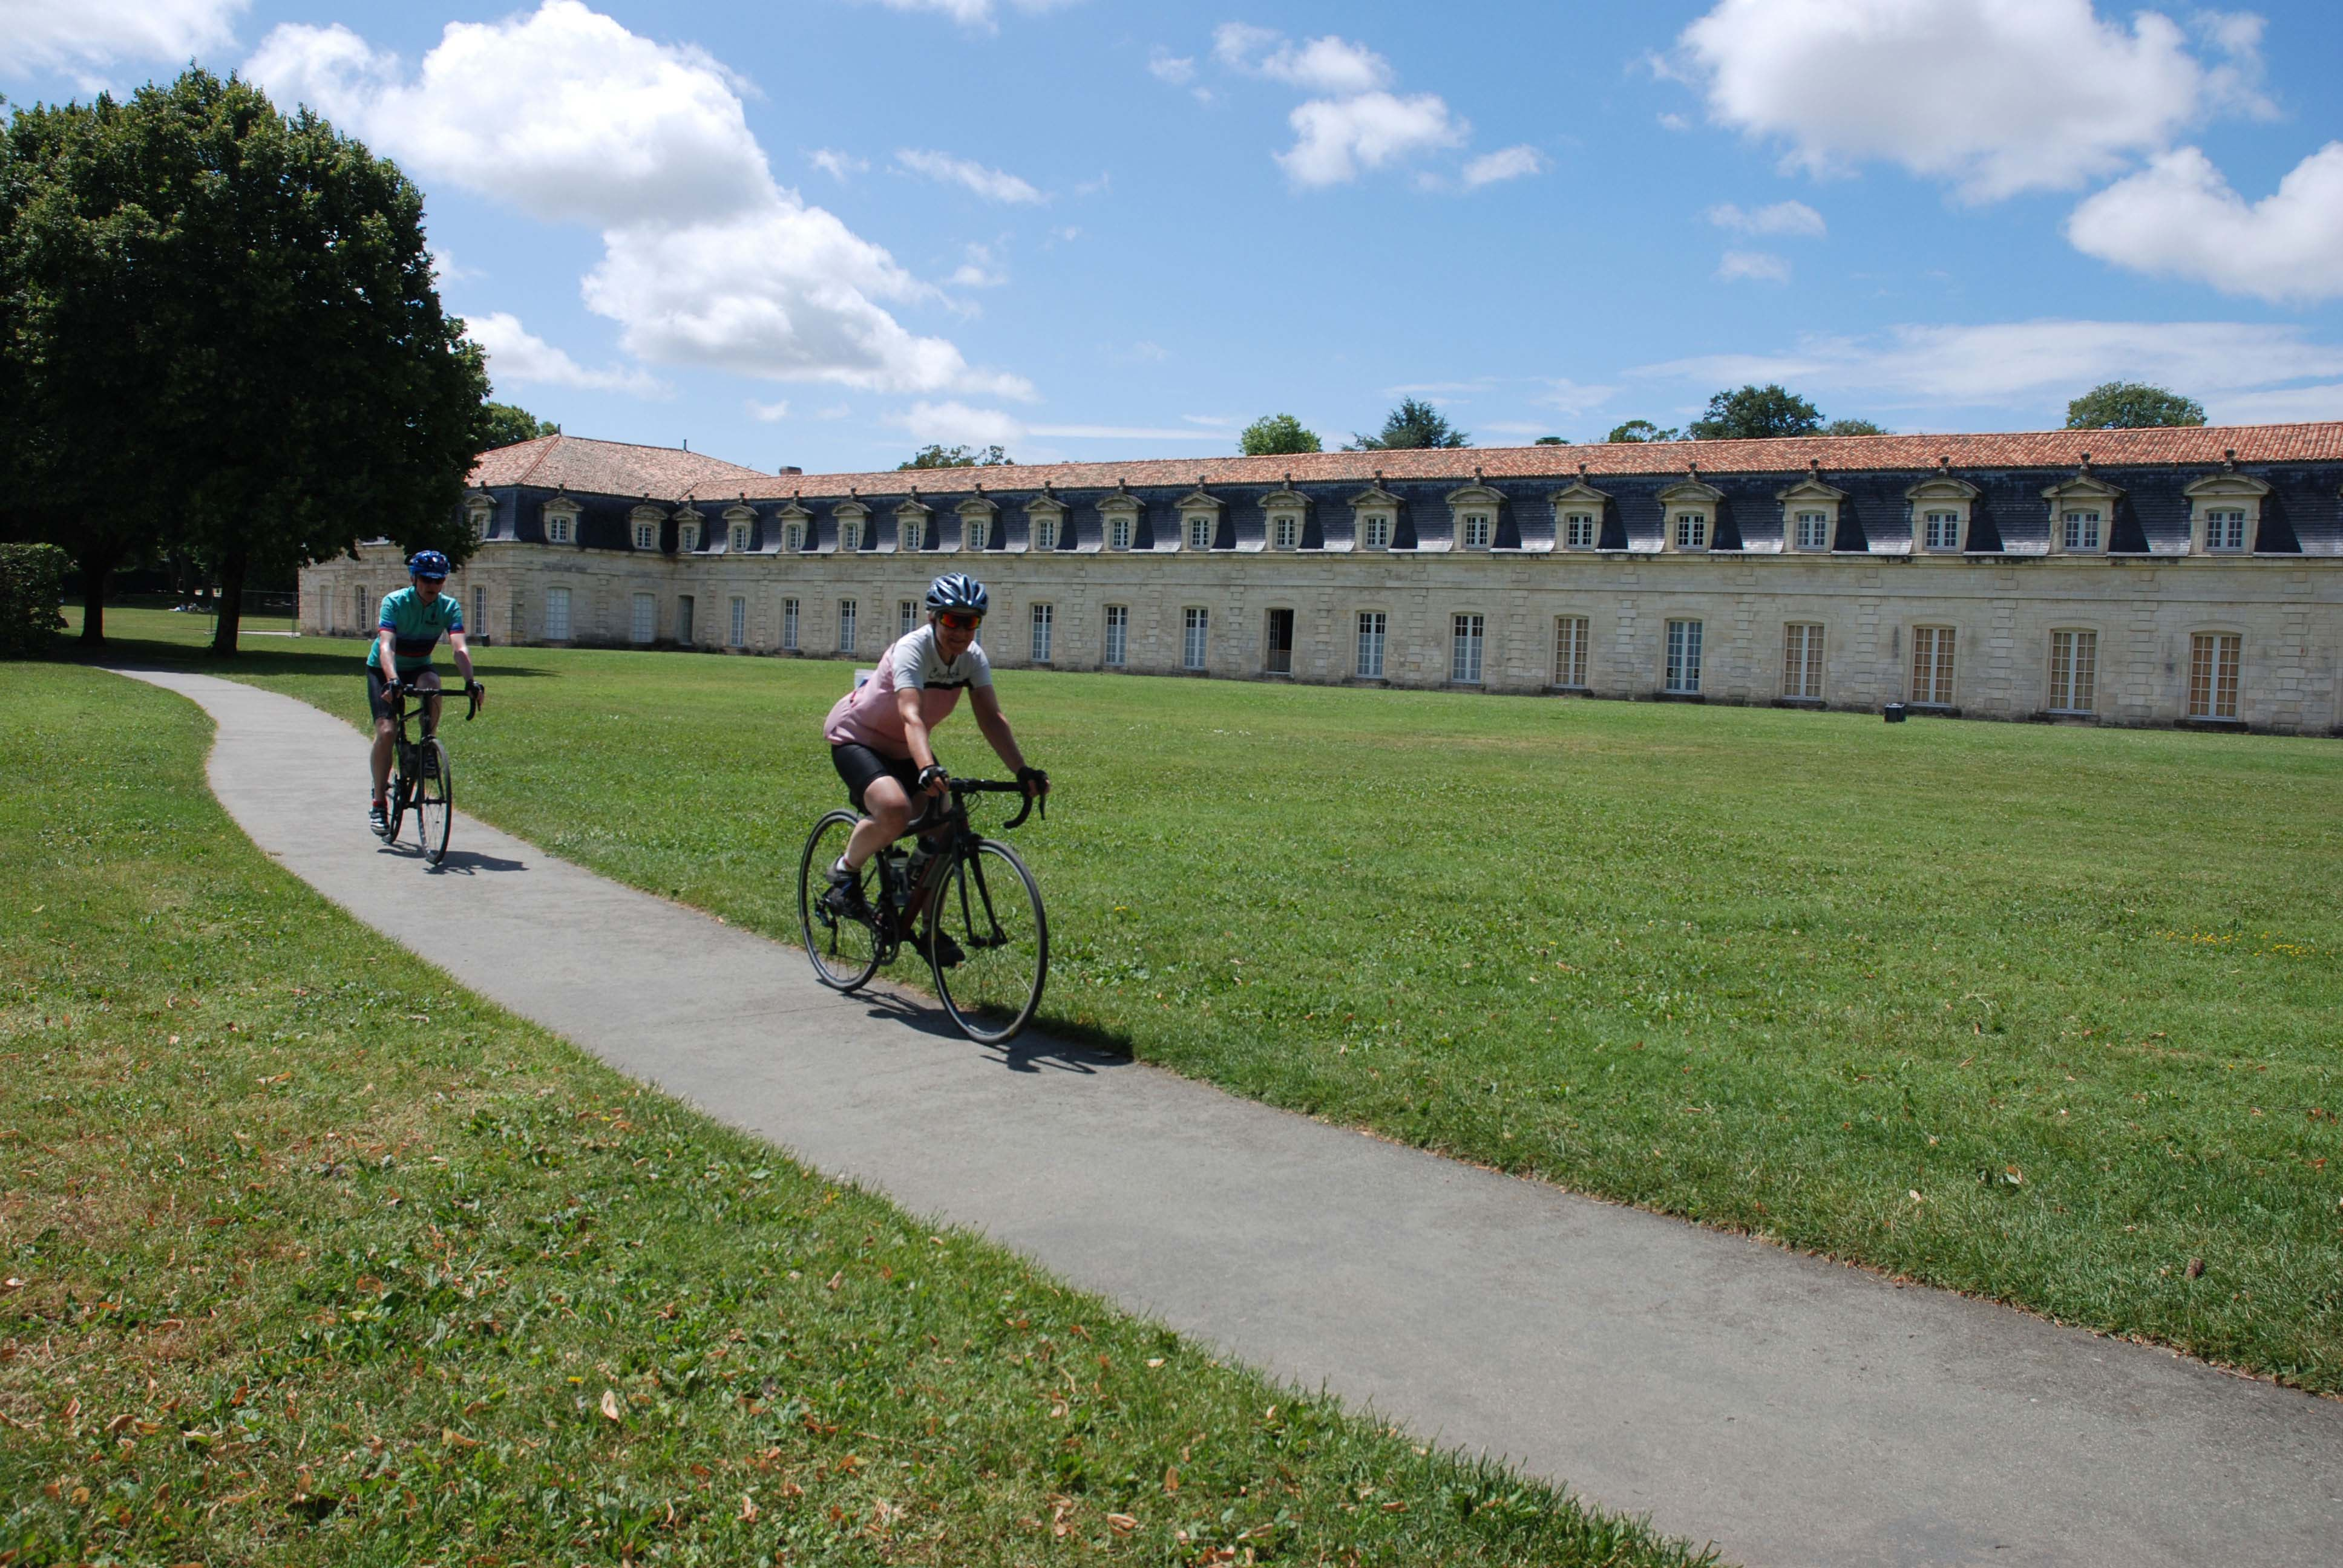 Cycling past France's longest building in the Charente Maritime